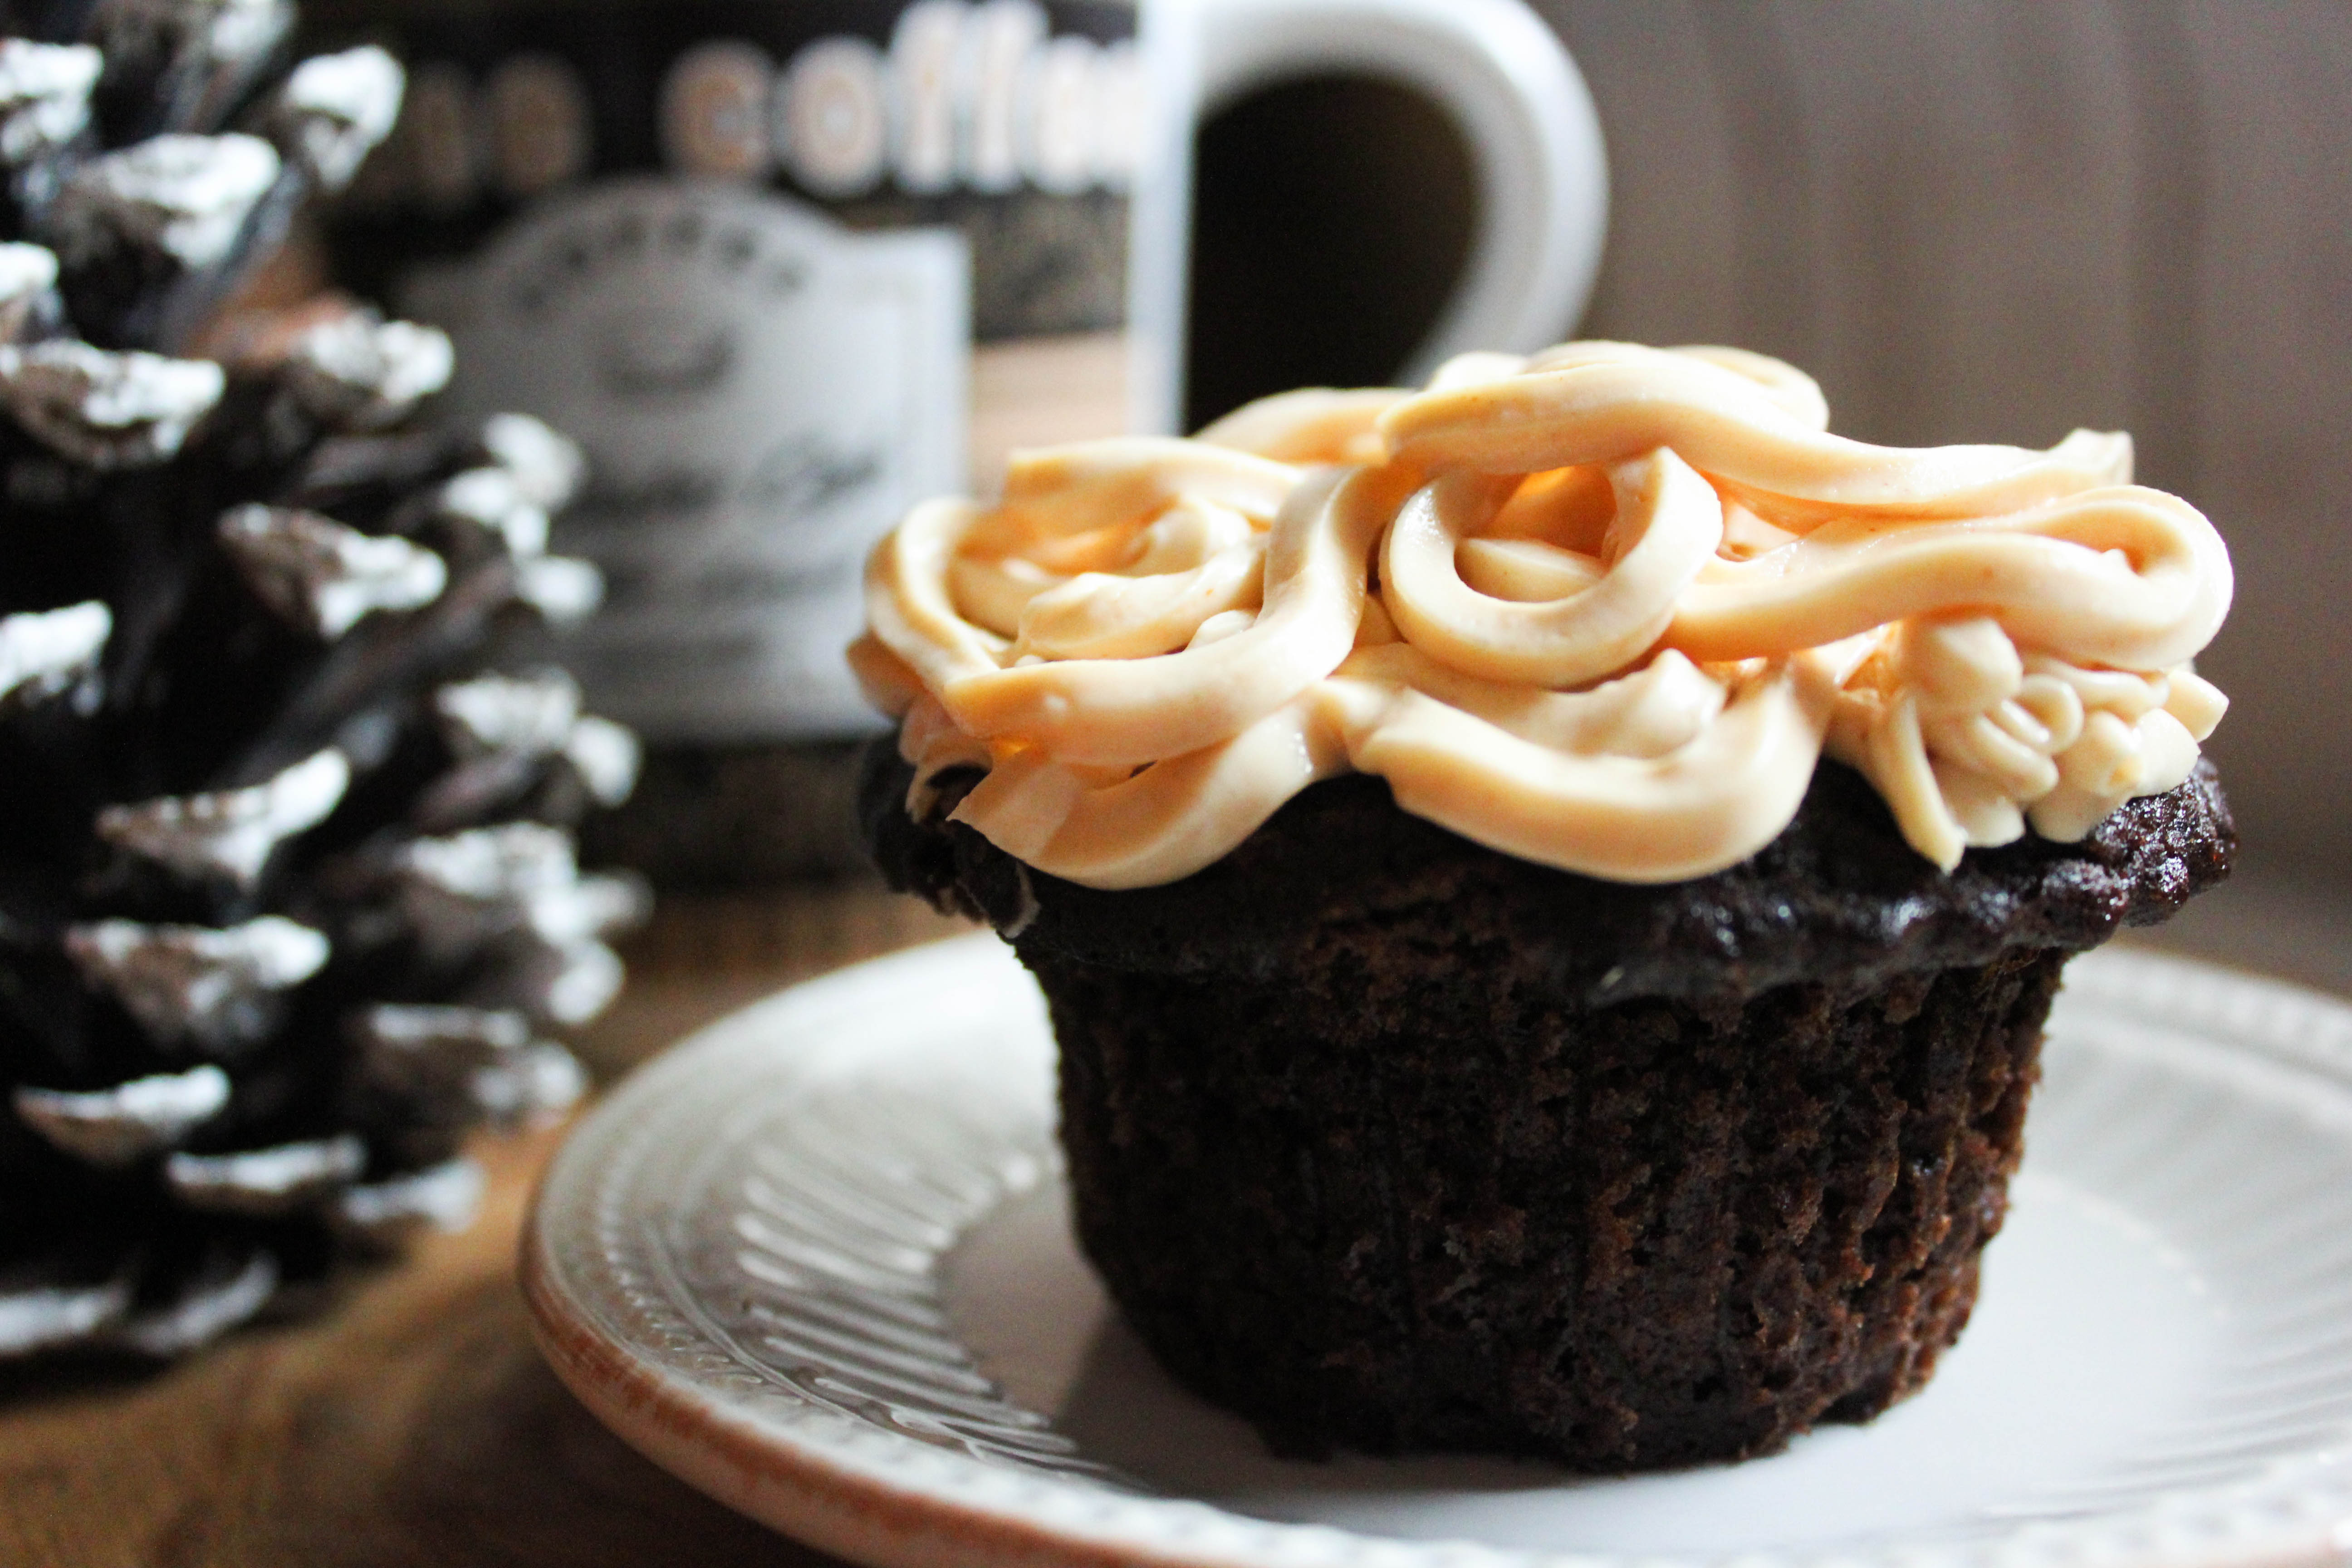 Surprise Cupcakes with Peanut Butter Frosting (THM-S, Low Carb, Sugar Free, Gluten Free)